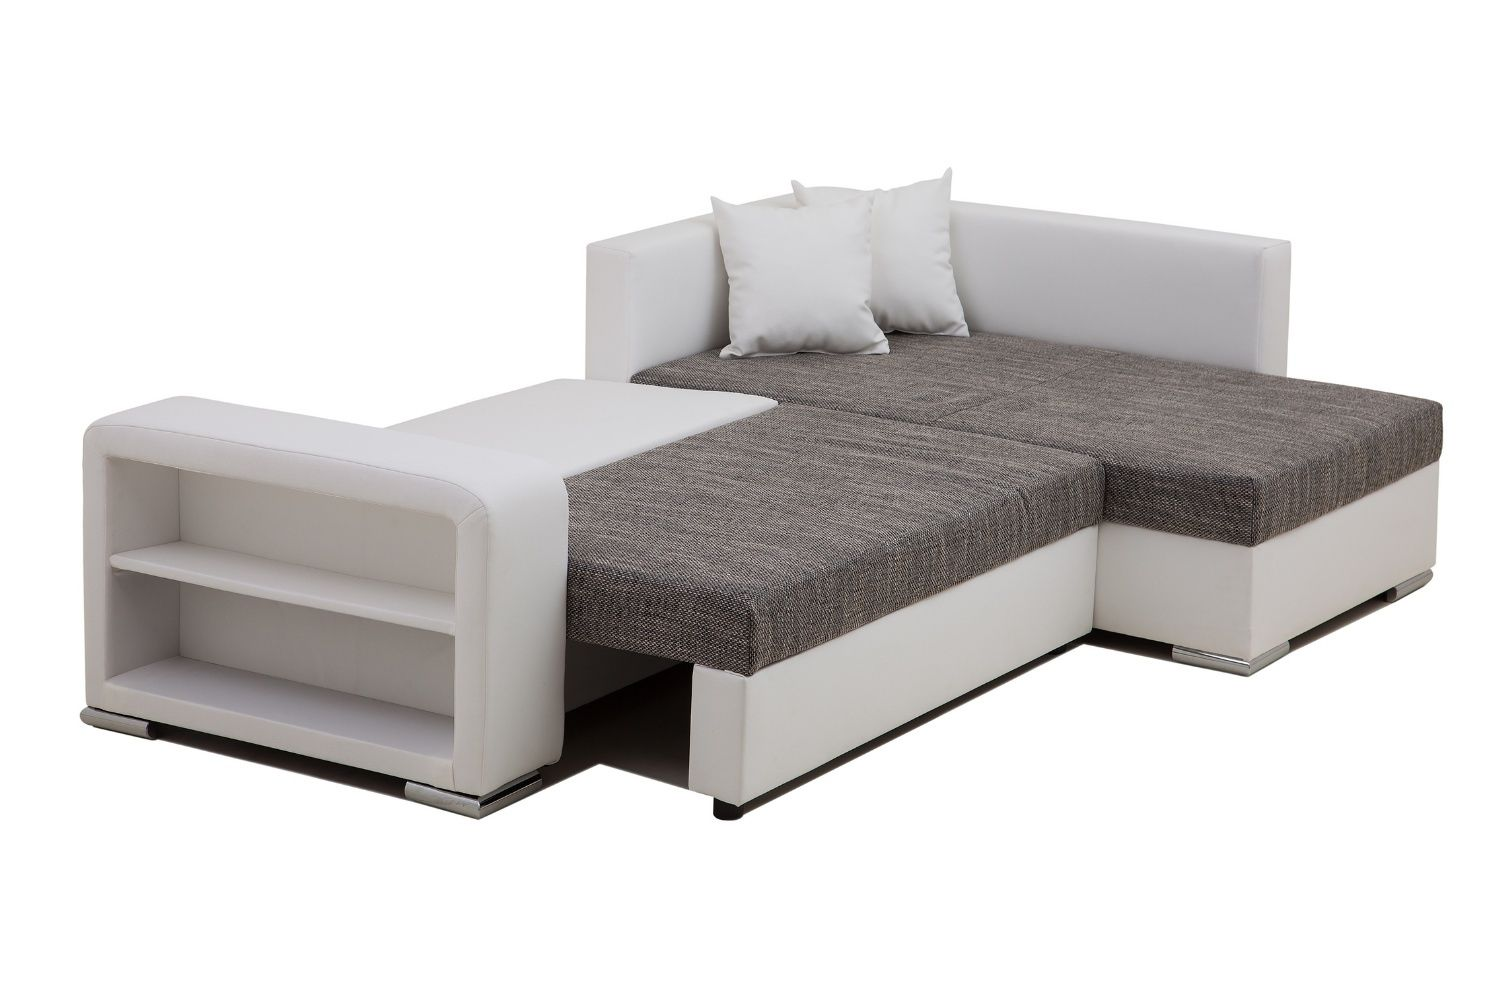 canape lit tissu convertible hst cpelit hst osk st vente de meubles et d 39 articles de confort. Black Bedroom Furniture Sets. Home Design Ideas